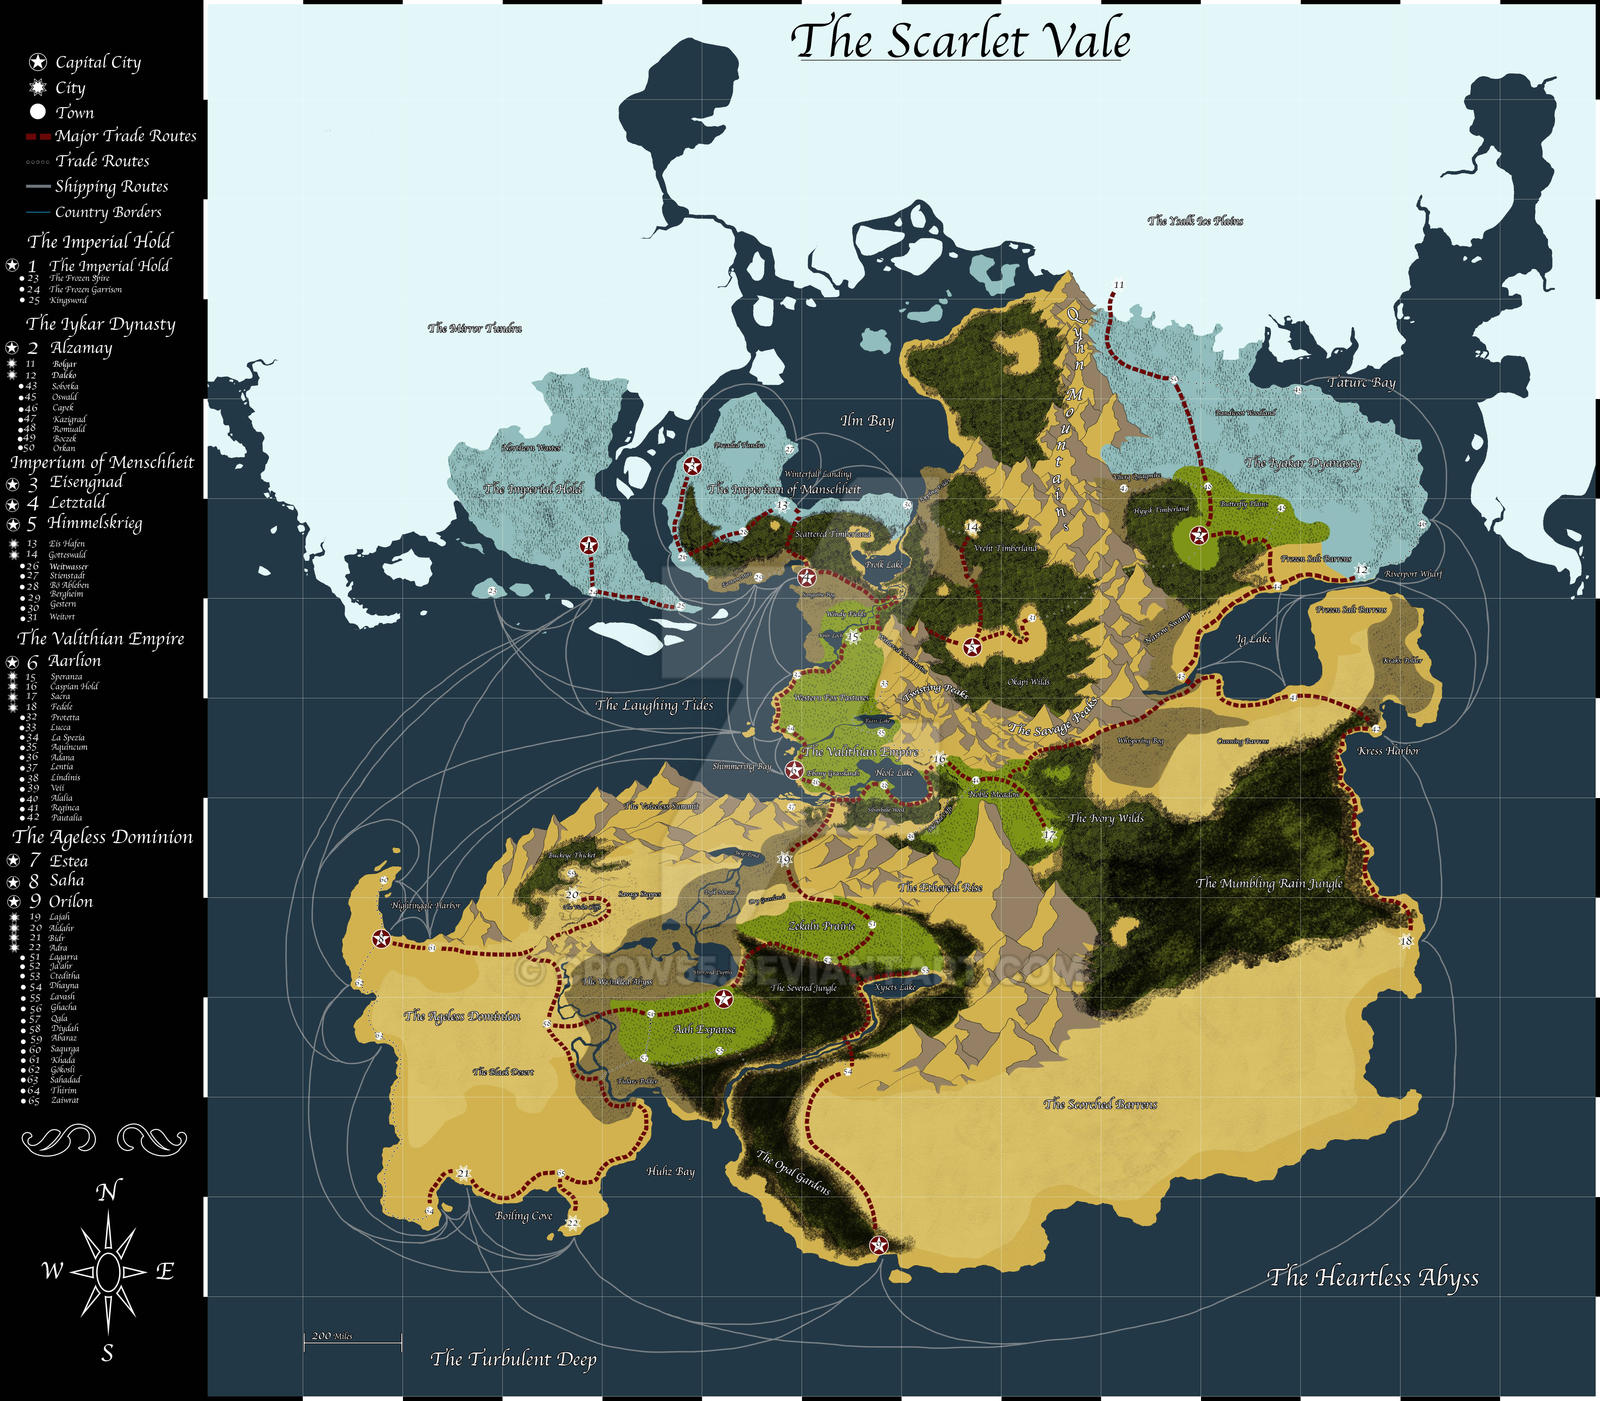 The Scarlet Vale Map by Crow55